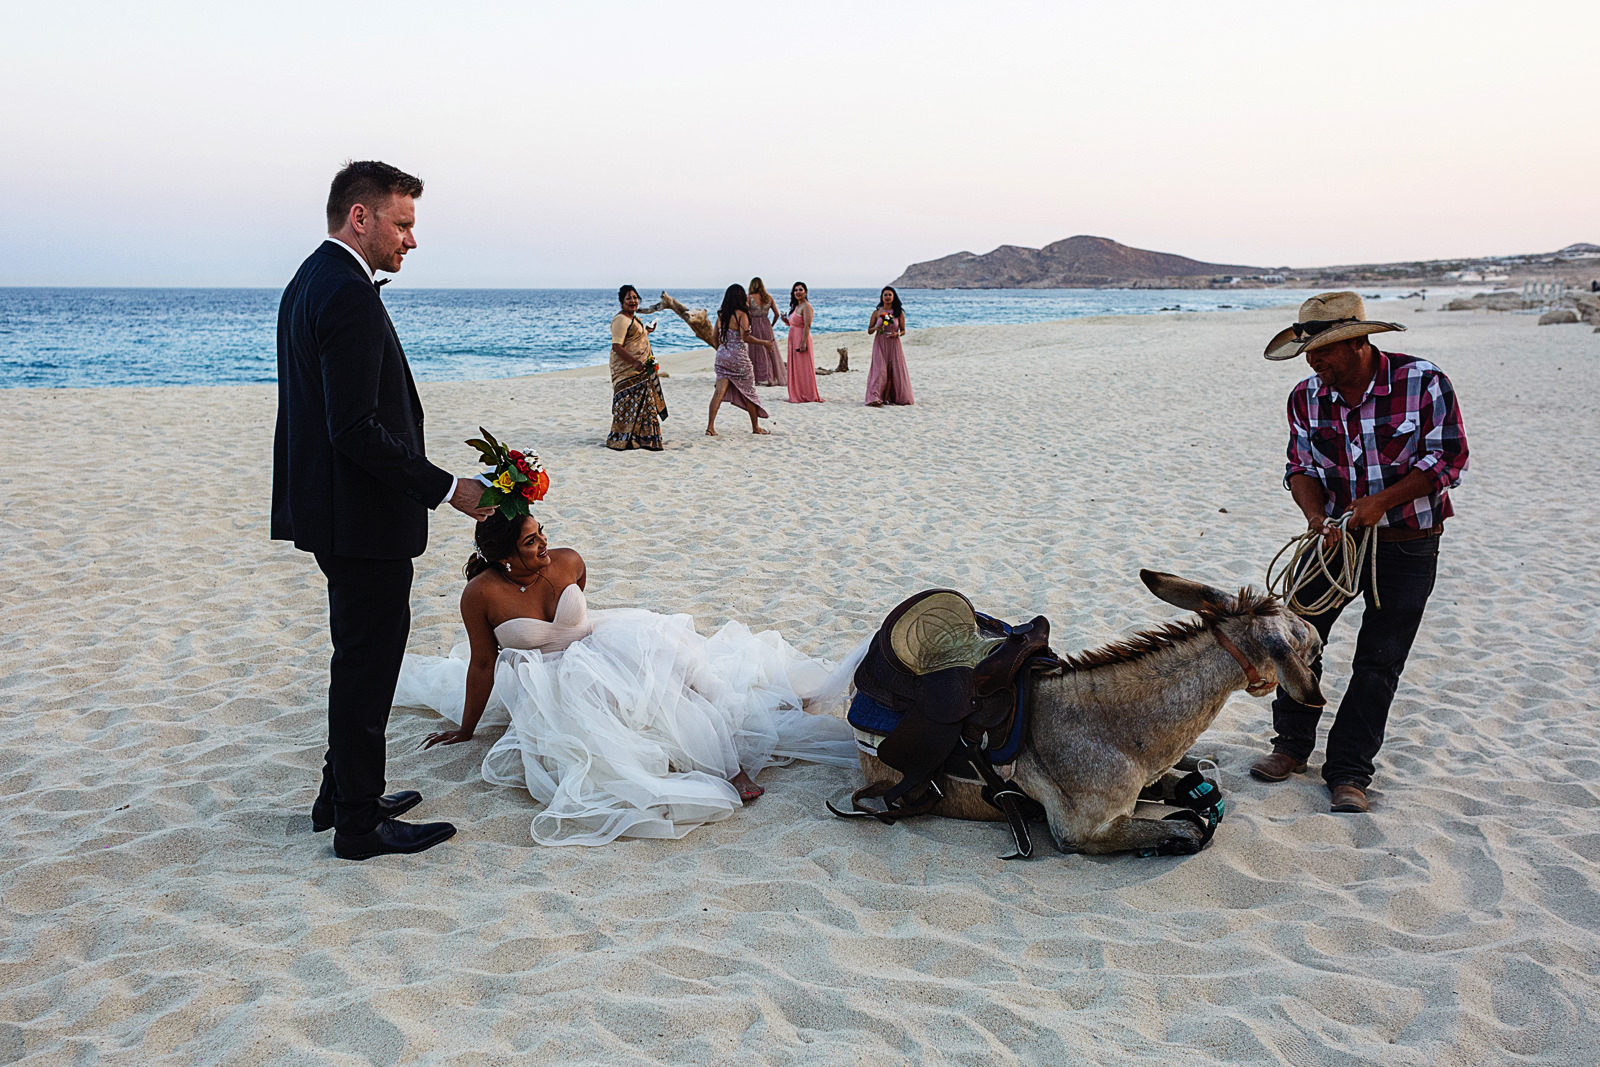 A donkey falls throwing the bride on the beach in Cabo San Lucas